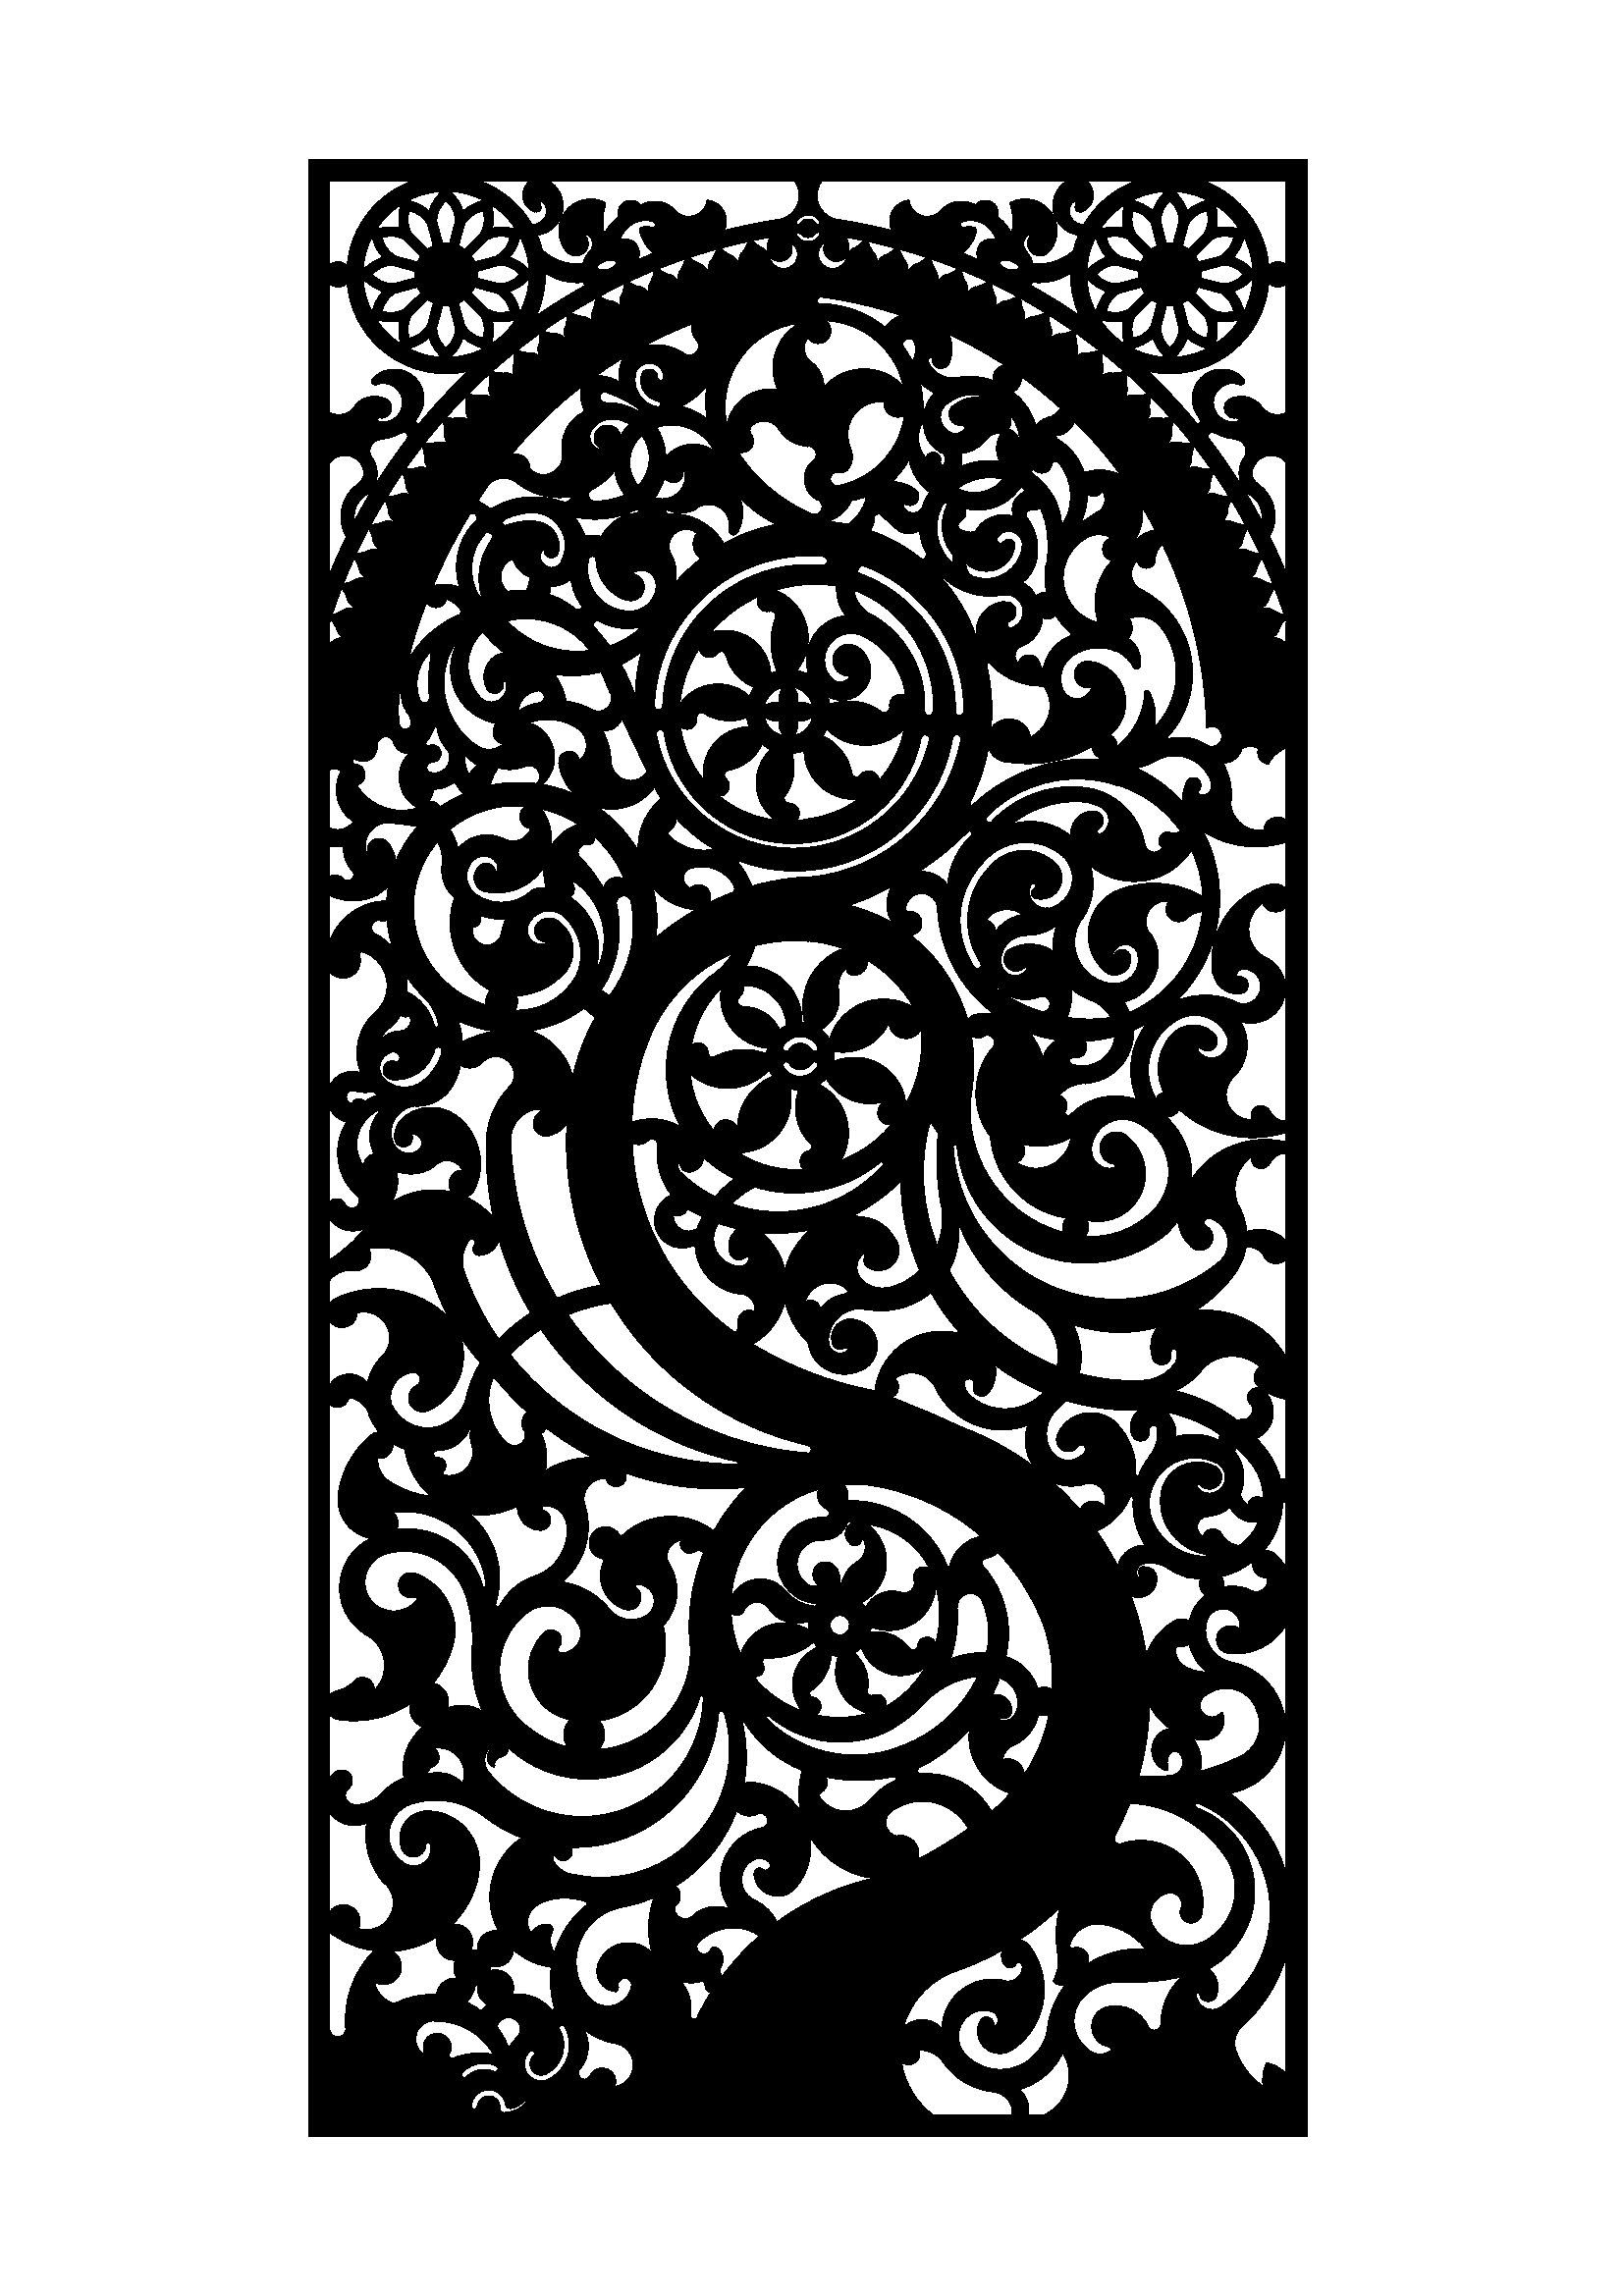 Finco jeddah metal laser cut door 6mm doors pinterest for Door design cnc